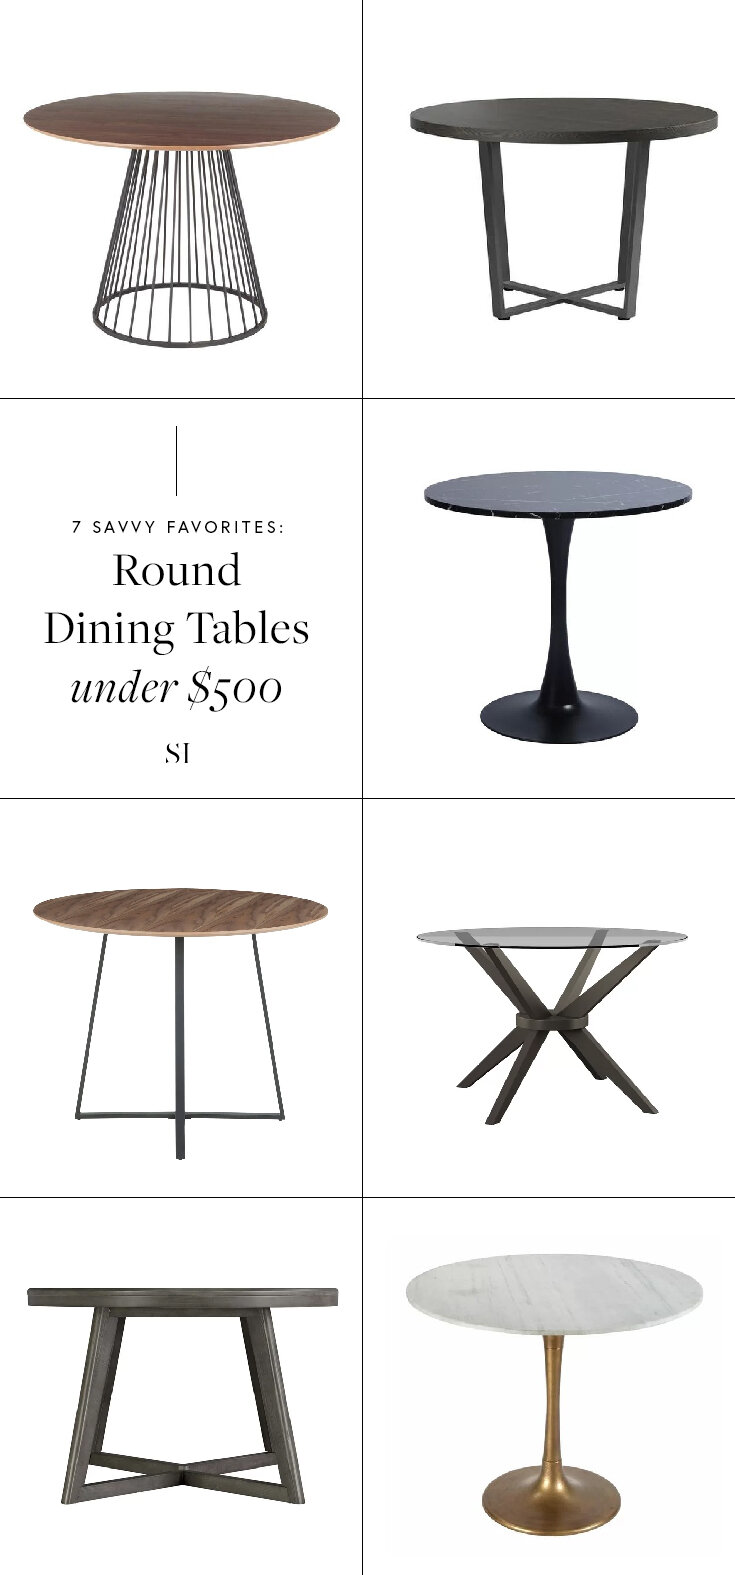 Modern and contemporary round dining room tables for under $500 - by the savvy heart interior design studio